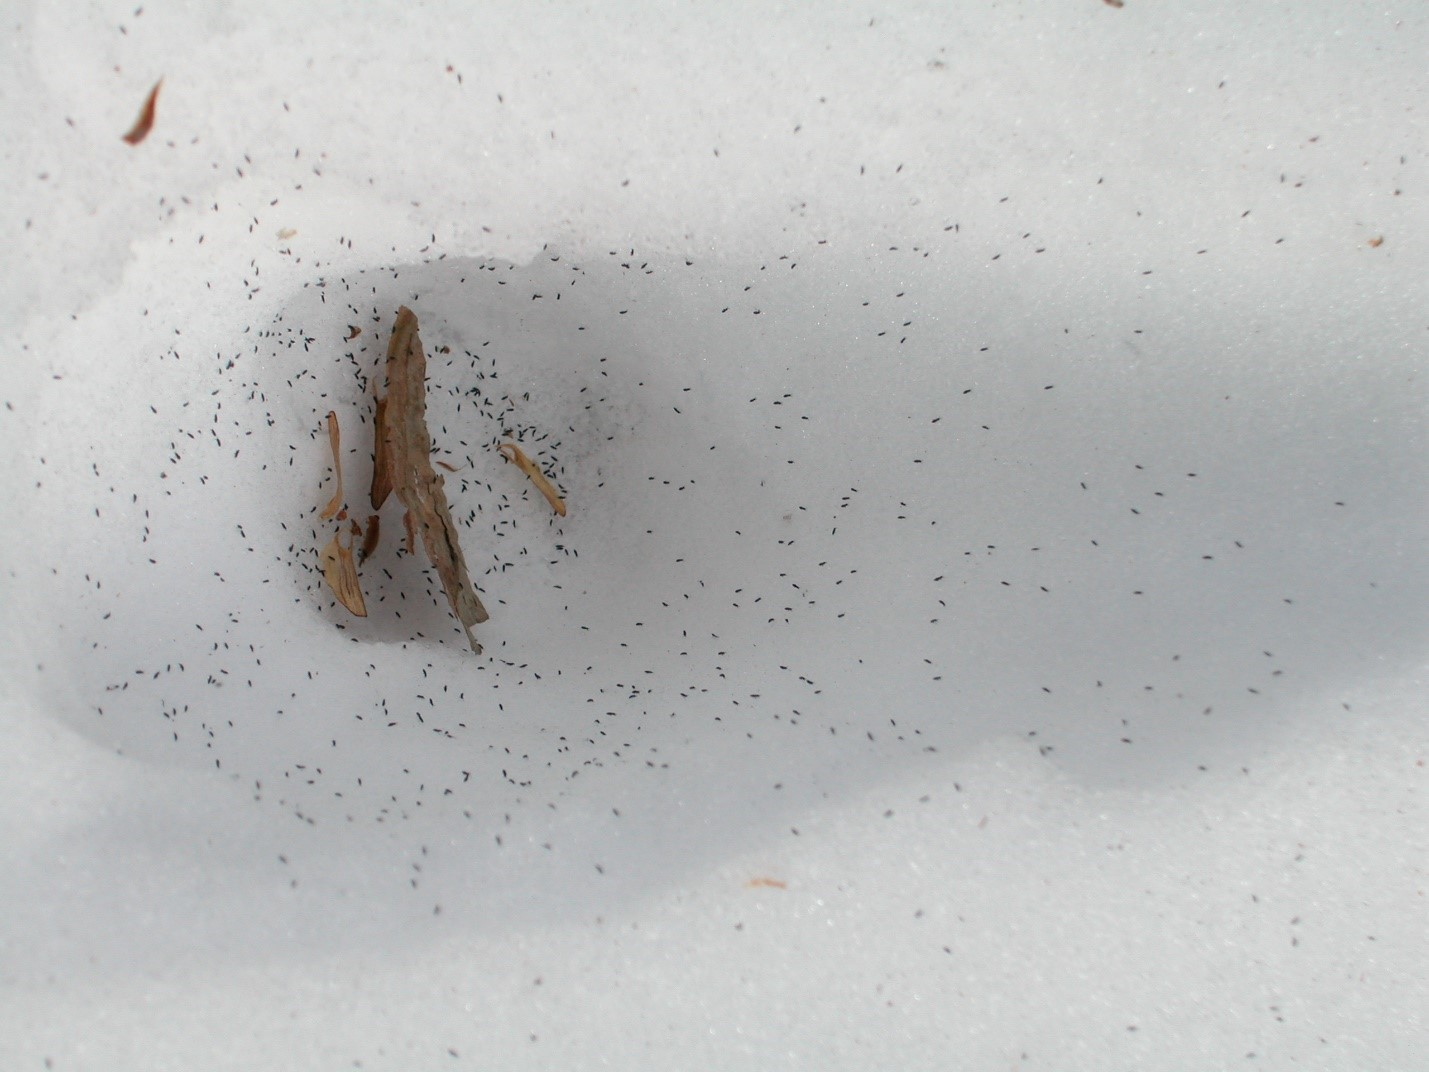 Many snow fleas on snow.